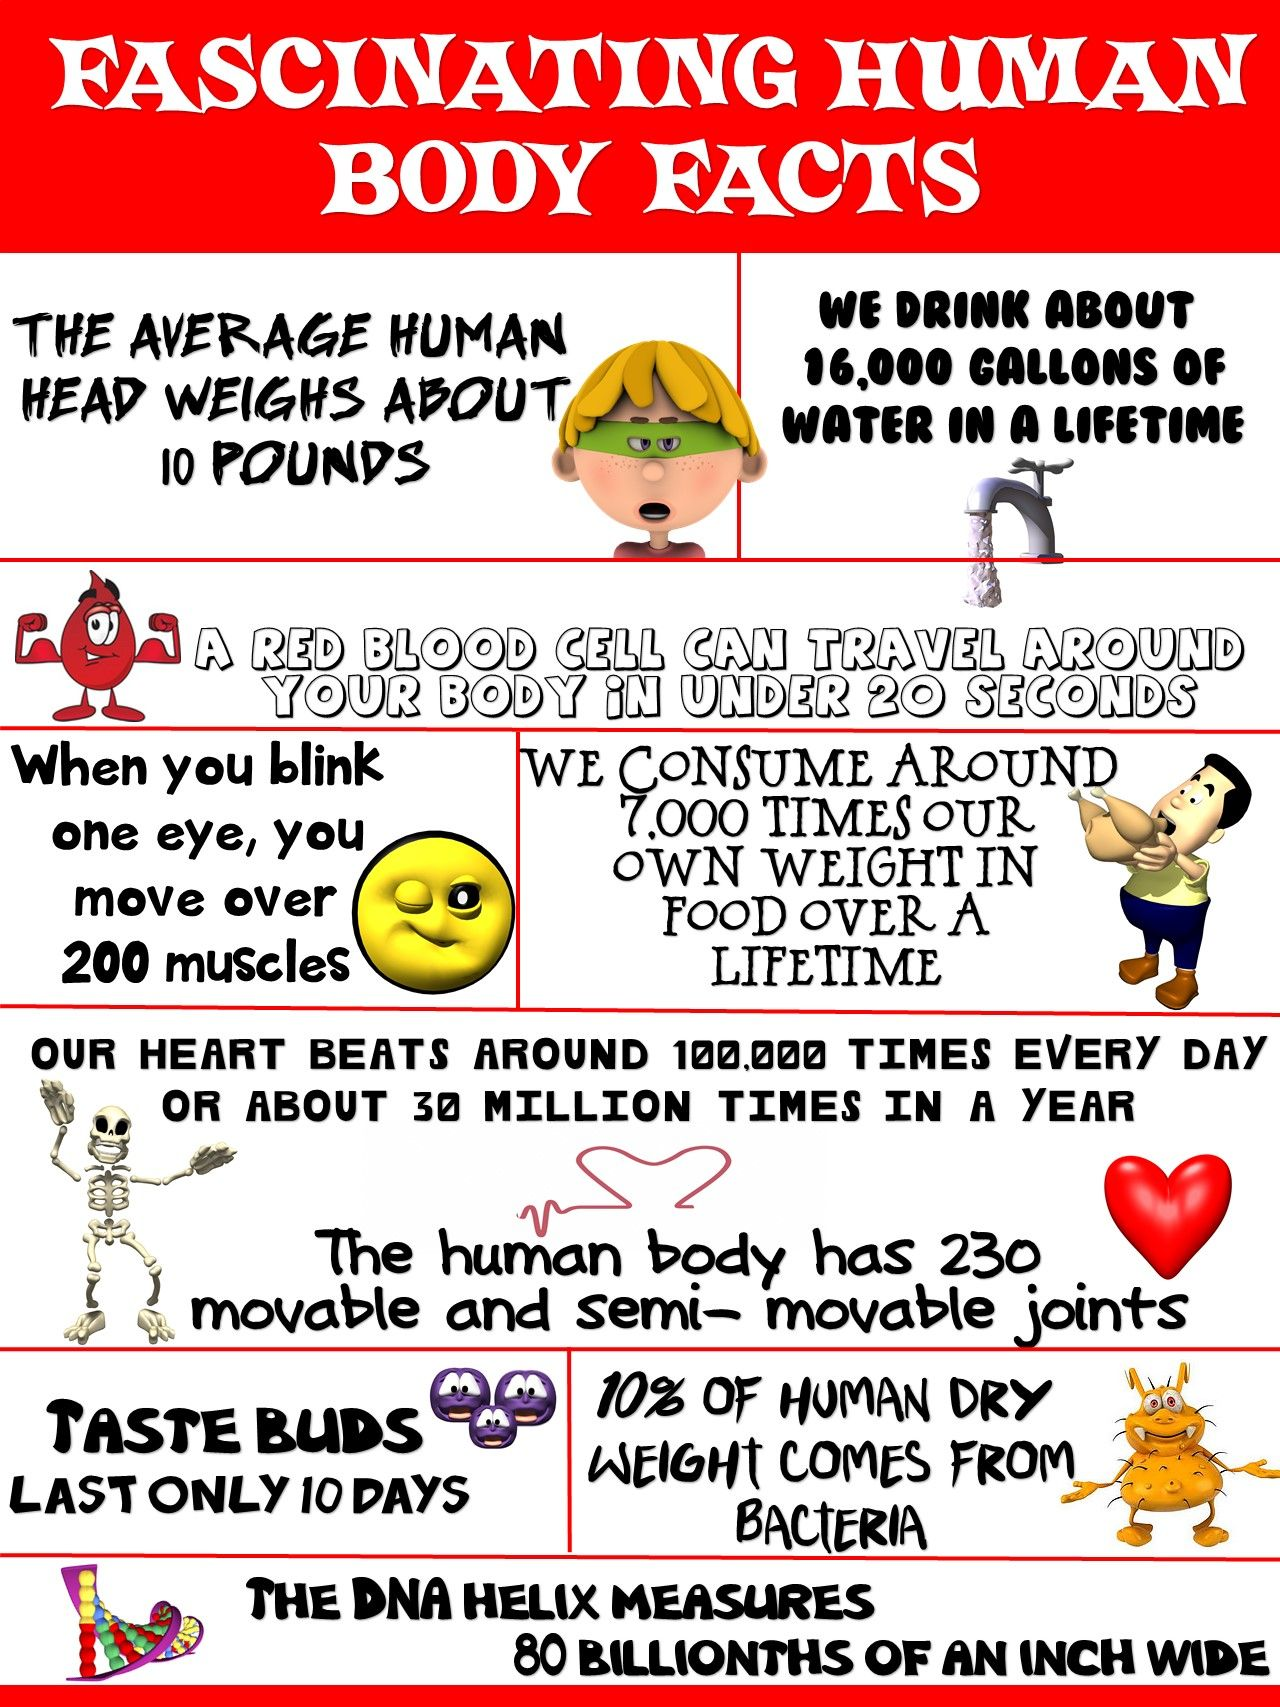 Health and Science Poster: Fascinating Human Body Facts | Health ...